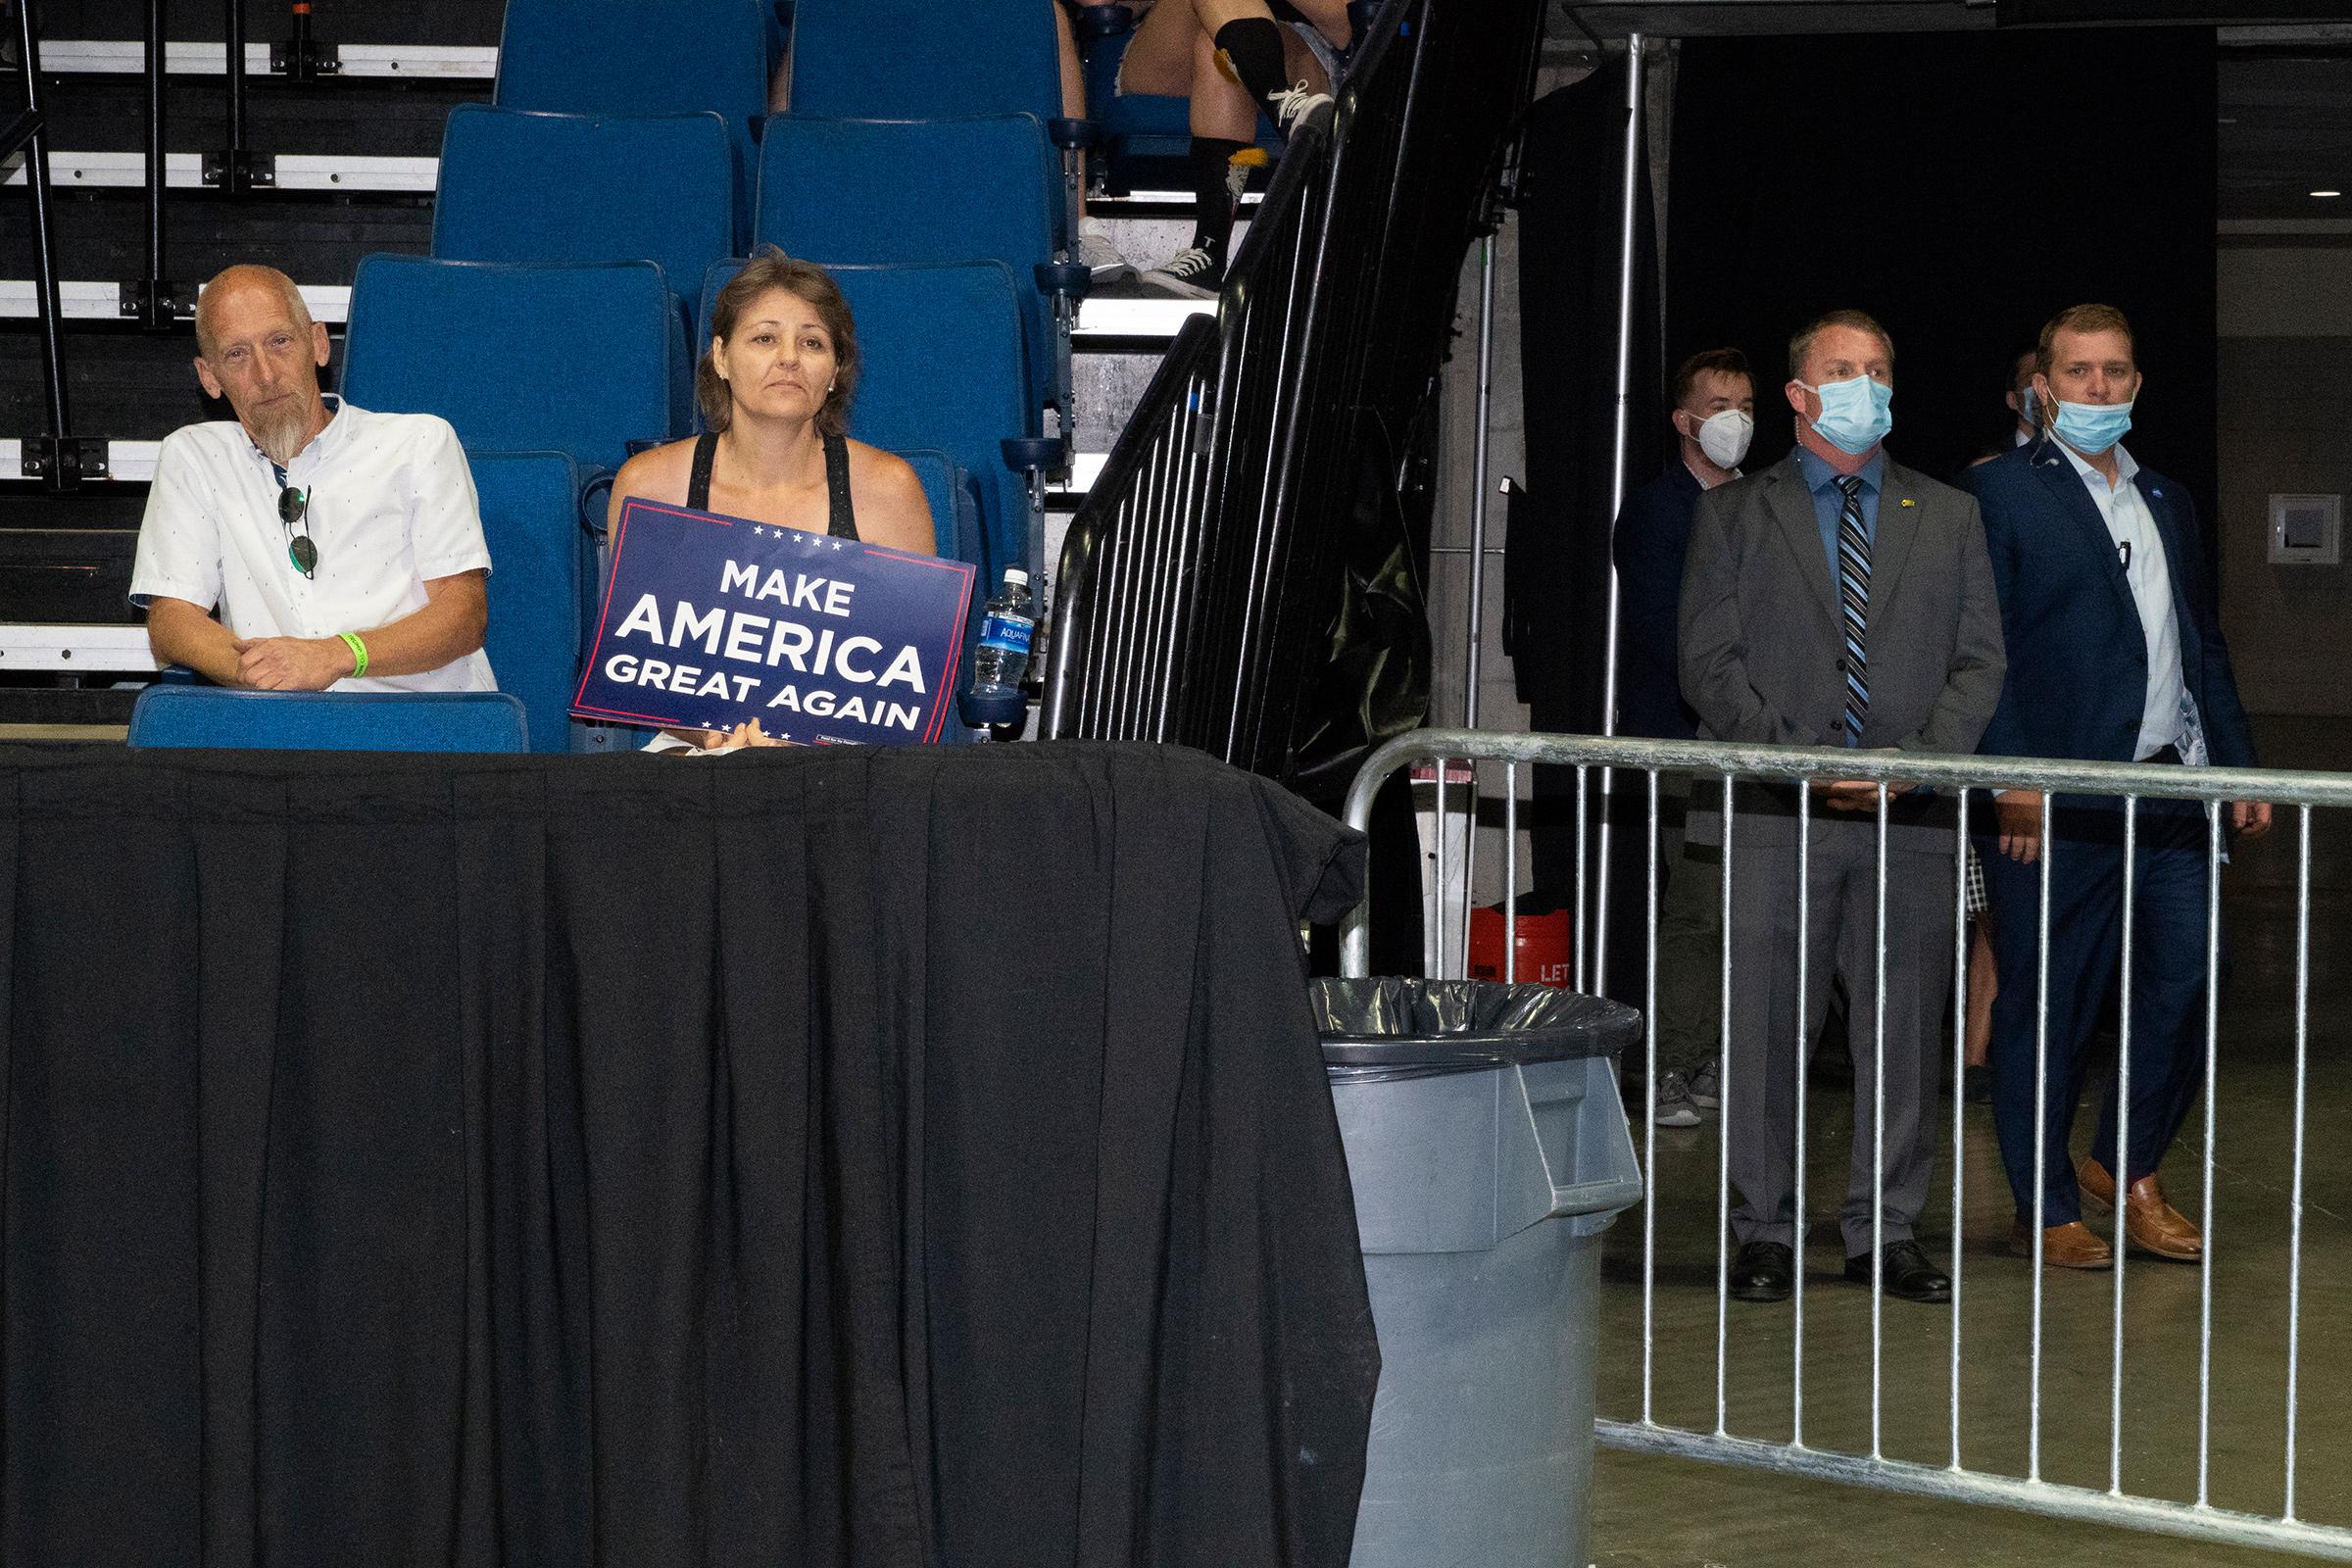 Trump supporters at his rally in Tulsa, Okla., on June 20